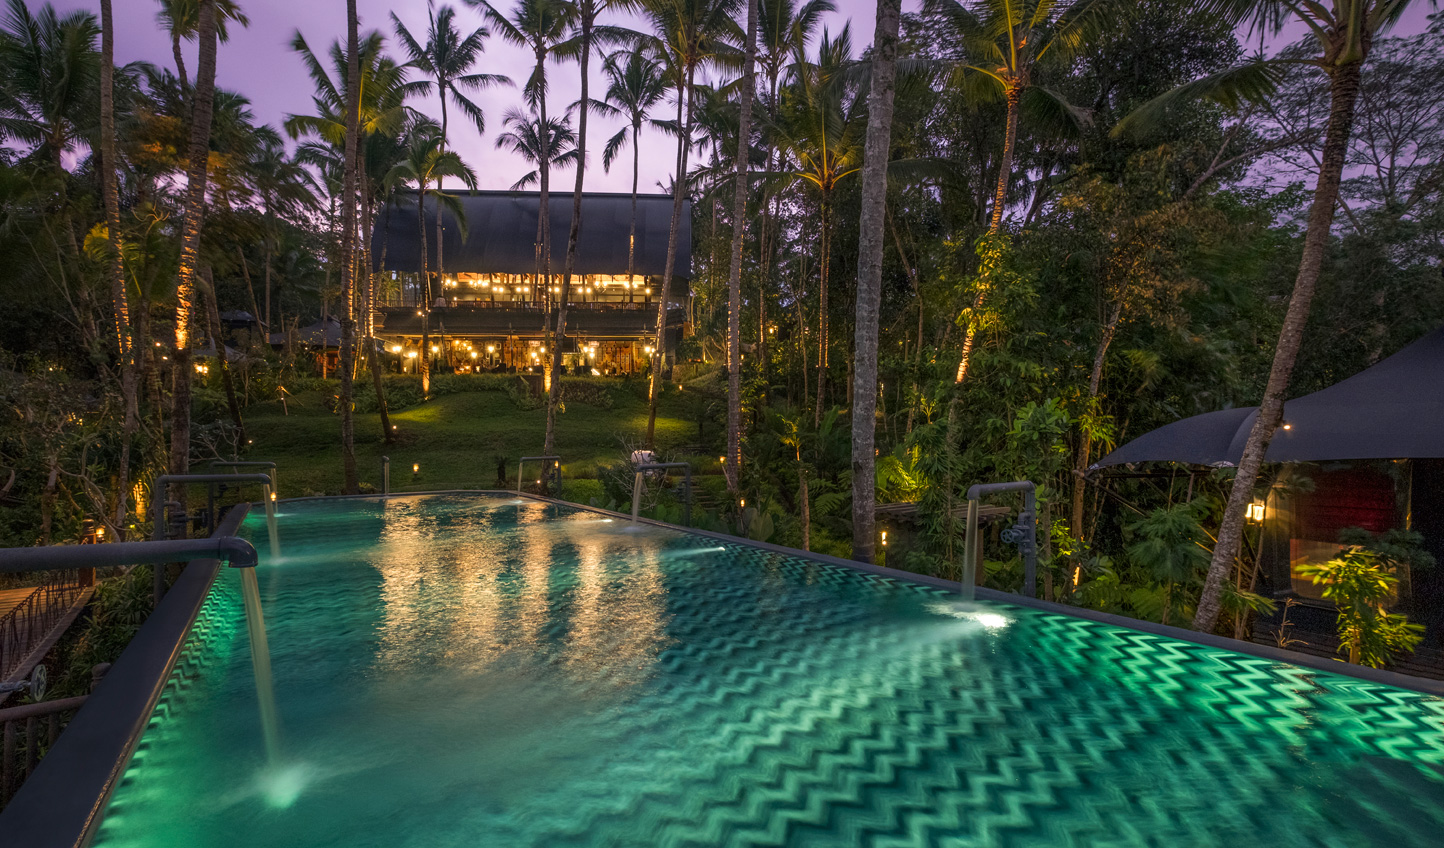 Nicknamed 'The Cistern', take a deep in the pool at the heart of the Ubud jungle